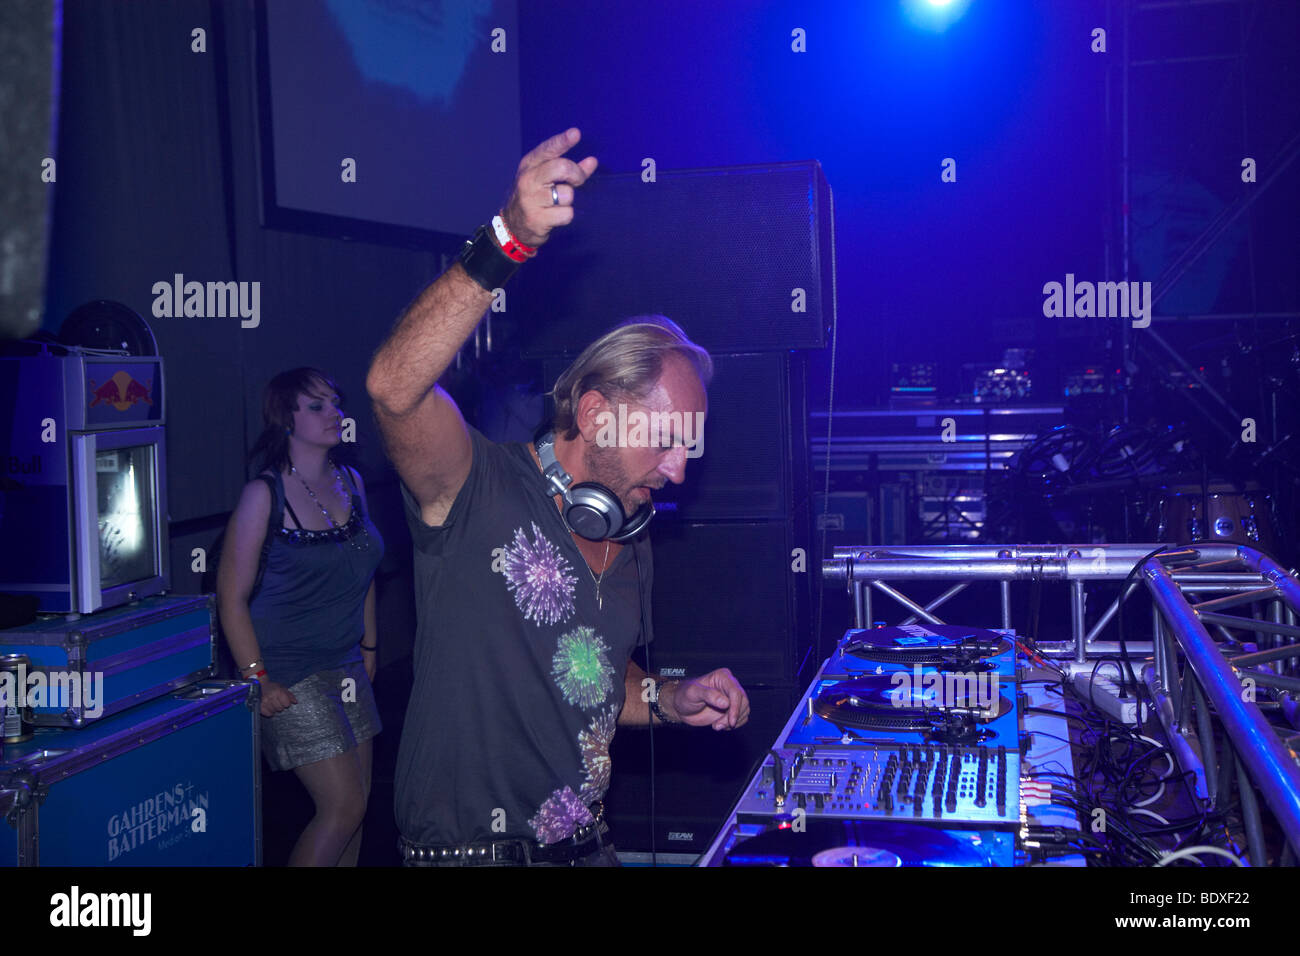 Techno Nature One Festival 2009, DJ Sven Vaeth, Kastellaun, Rhineland-Palatinate, Germany, Europe - Stock Image